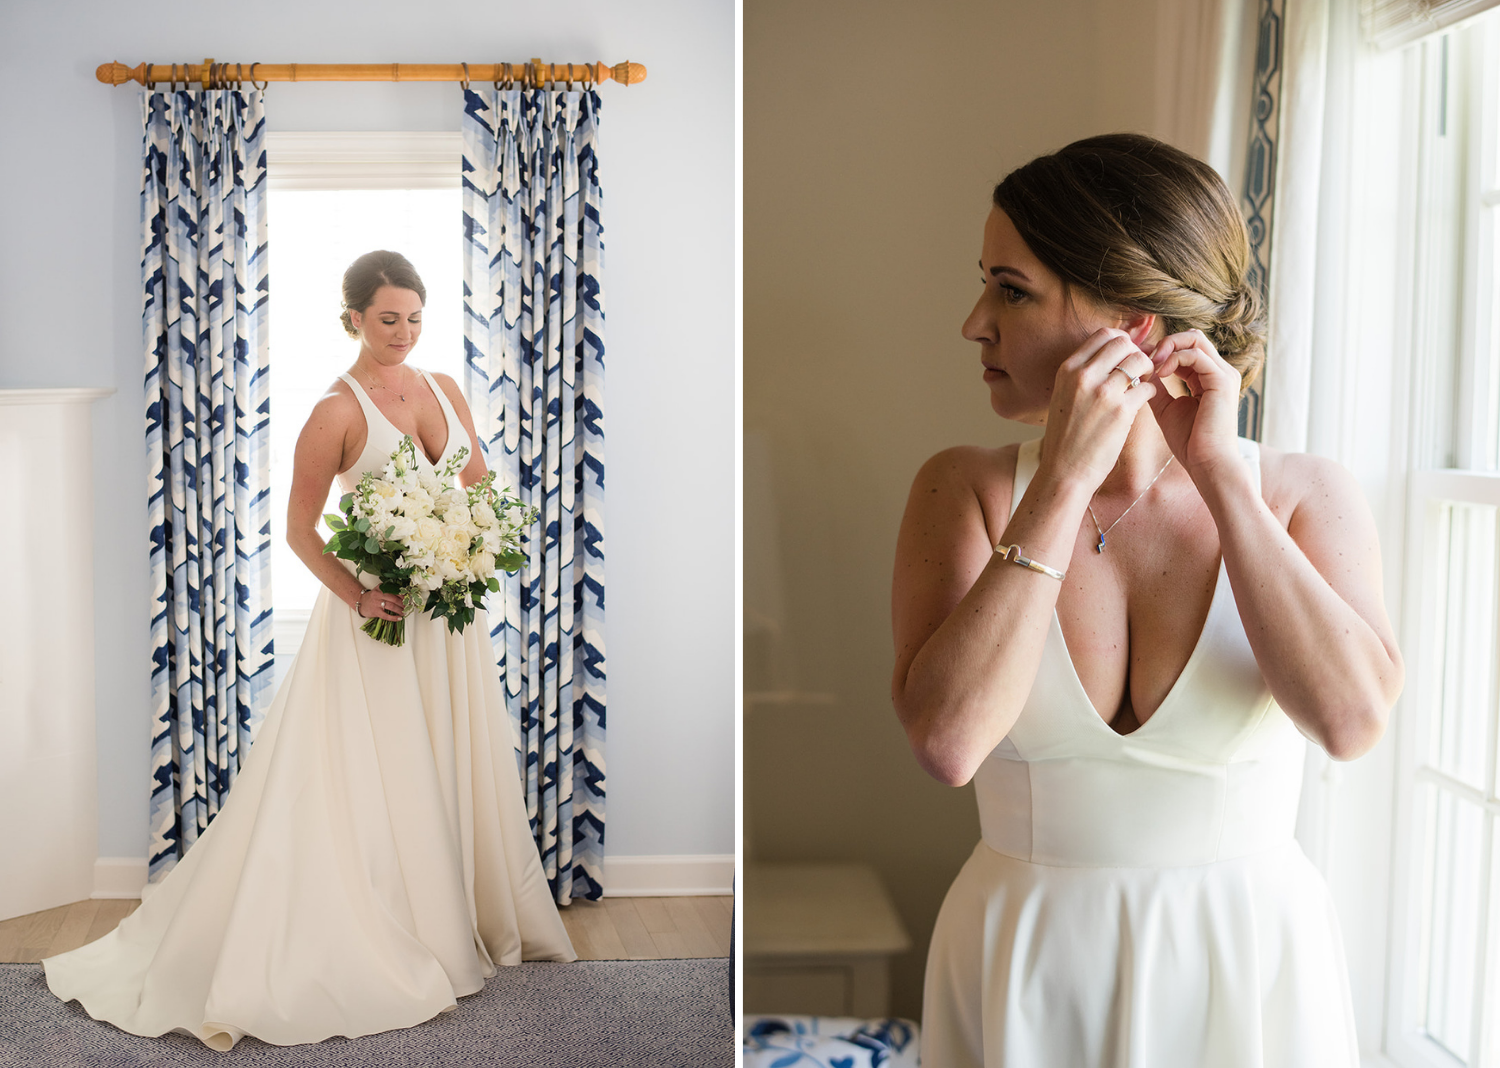 bride finishes putting on her wedding day earrings as she poses with her wedding dress